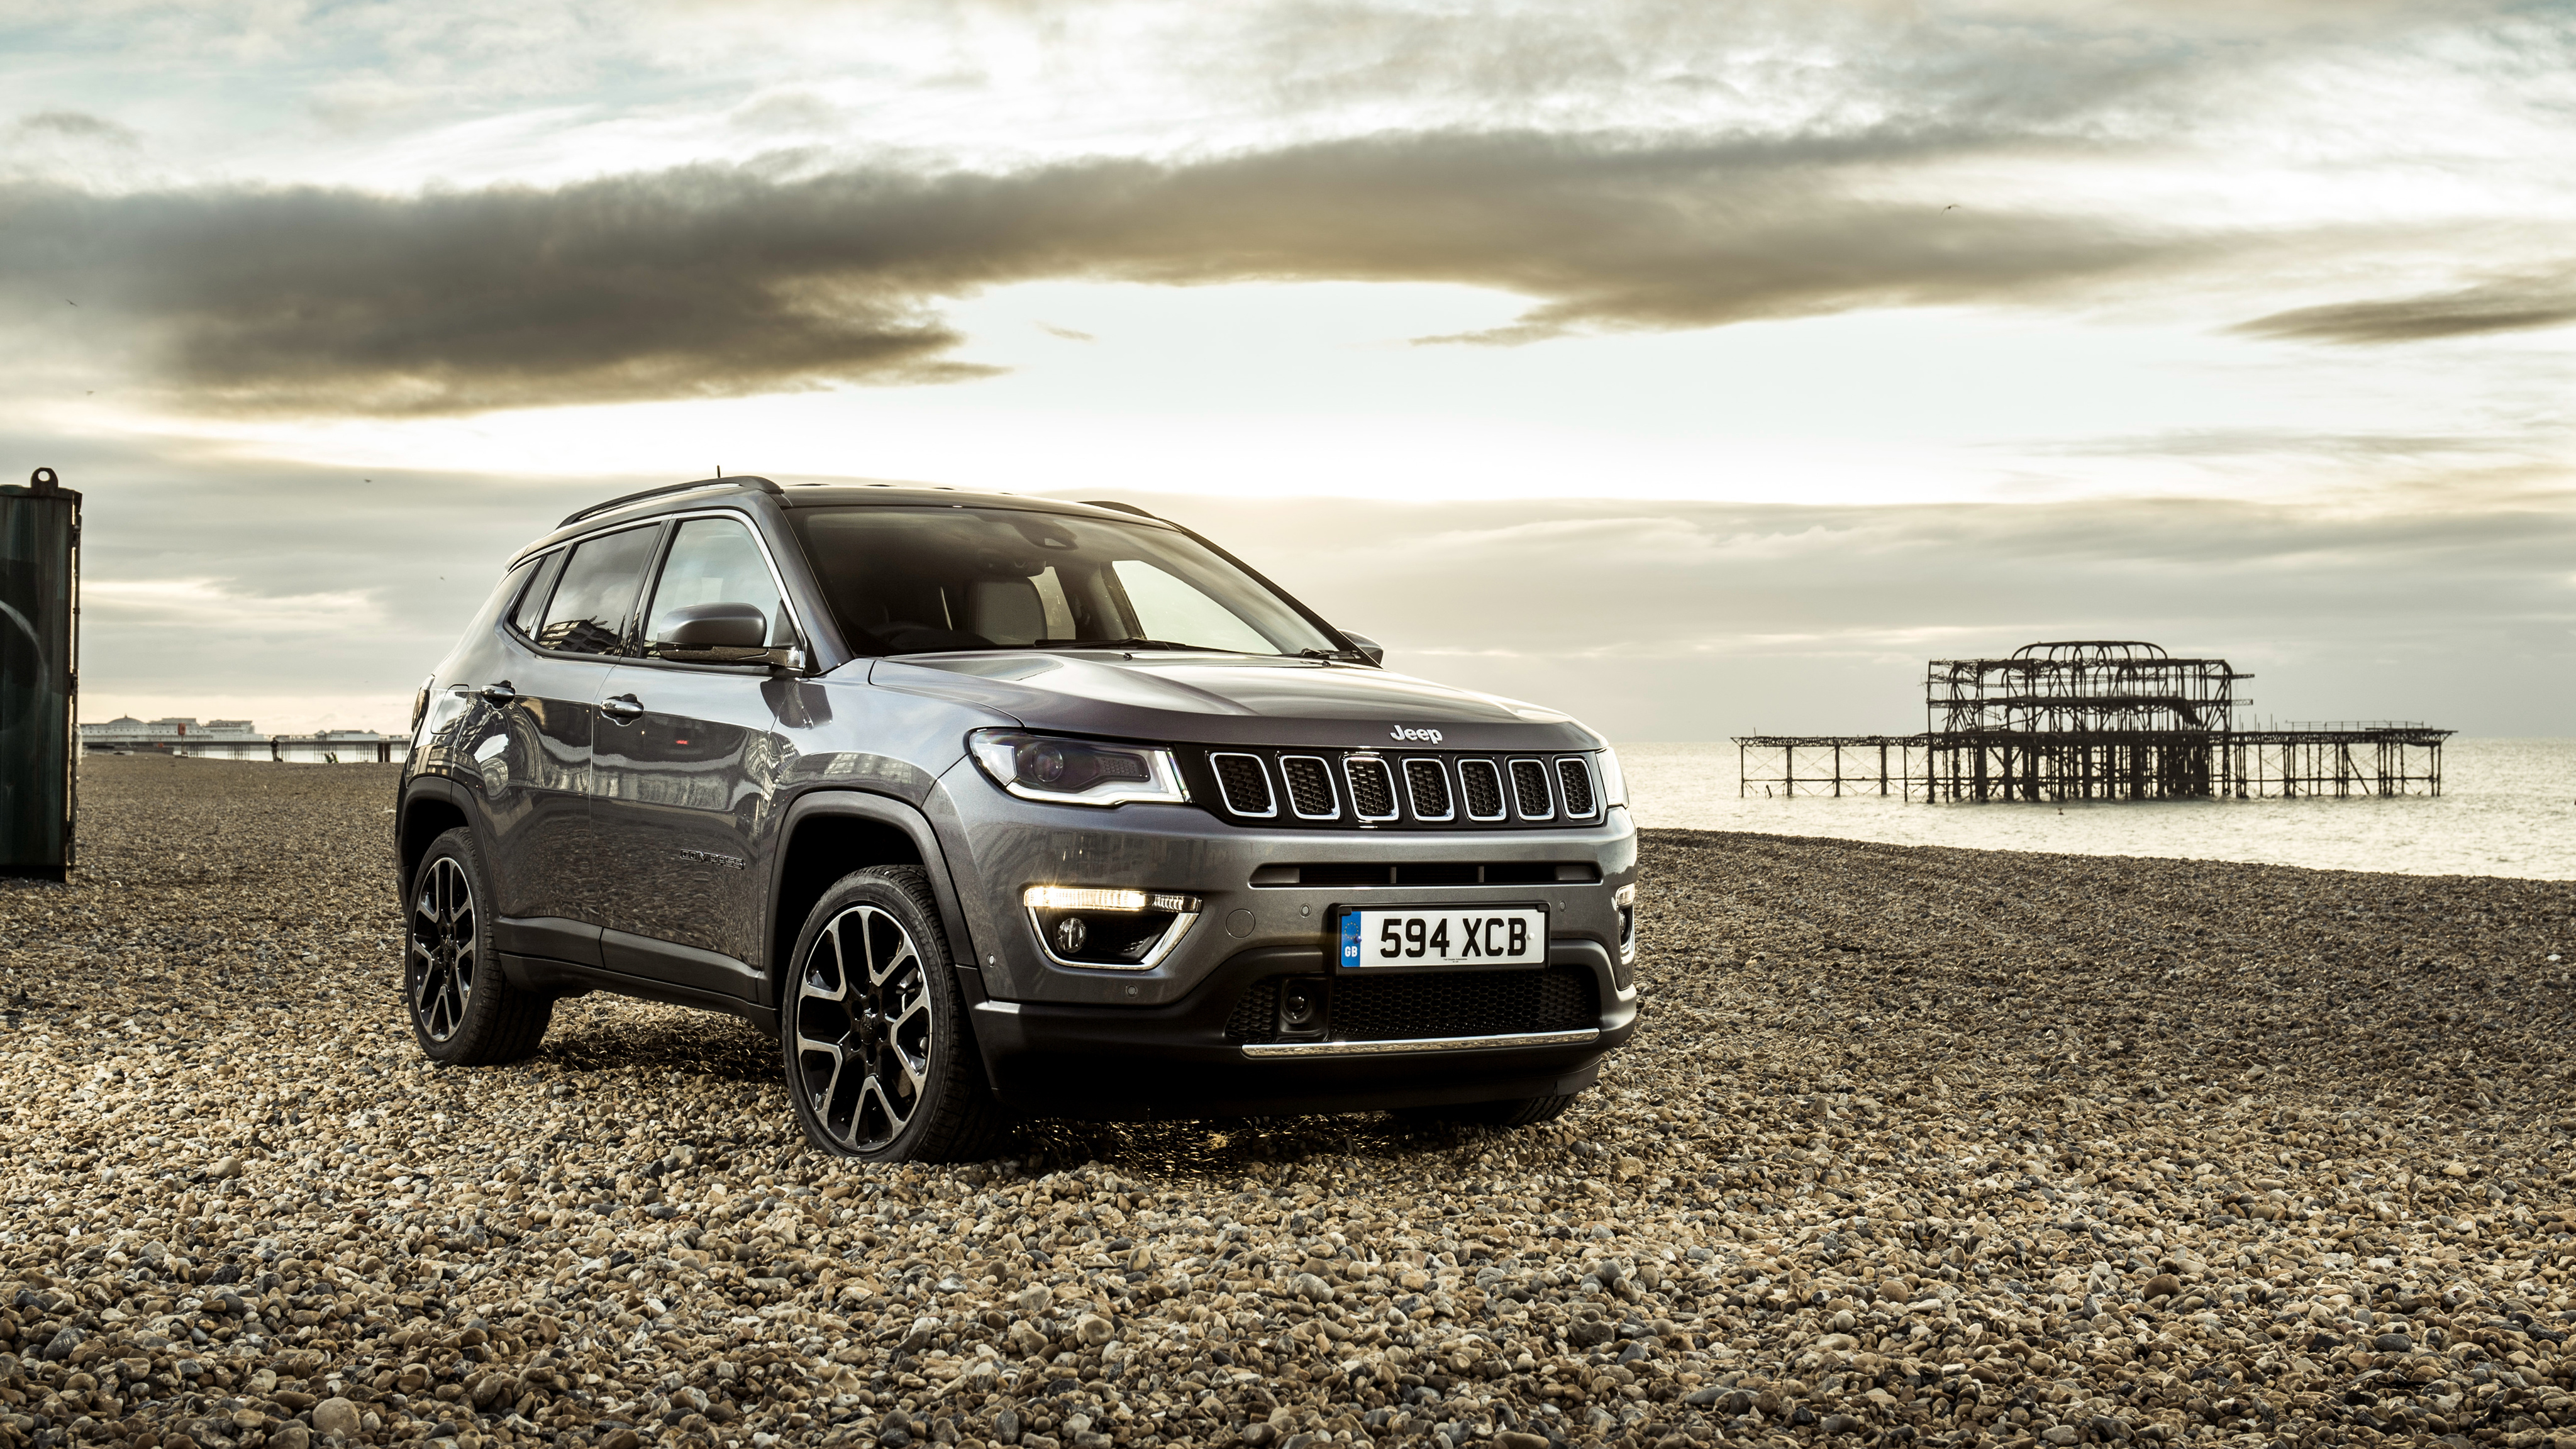 2018 jeep compass limited wallpaper hd car wallpapers id 9135. Black Bedroom Furniture Sets. Home Design Ideas